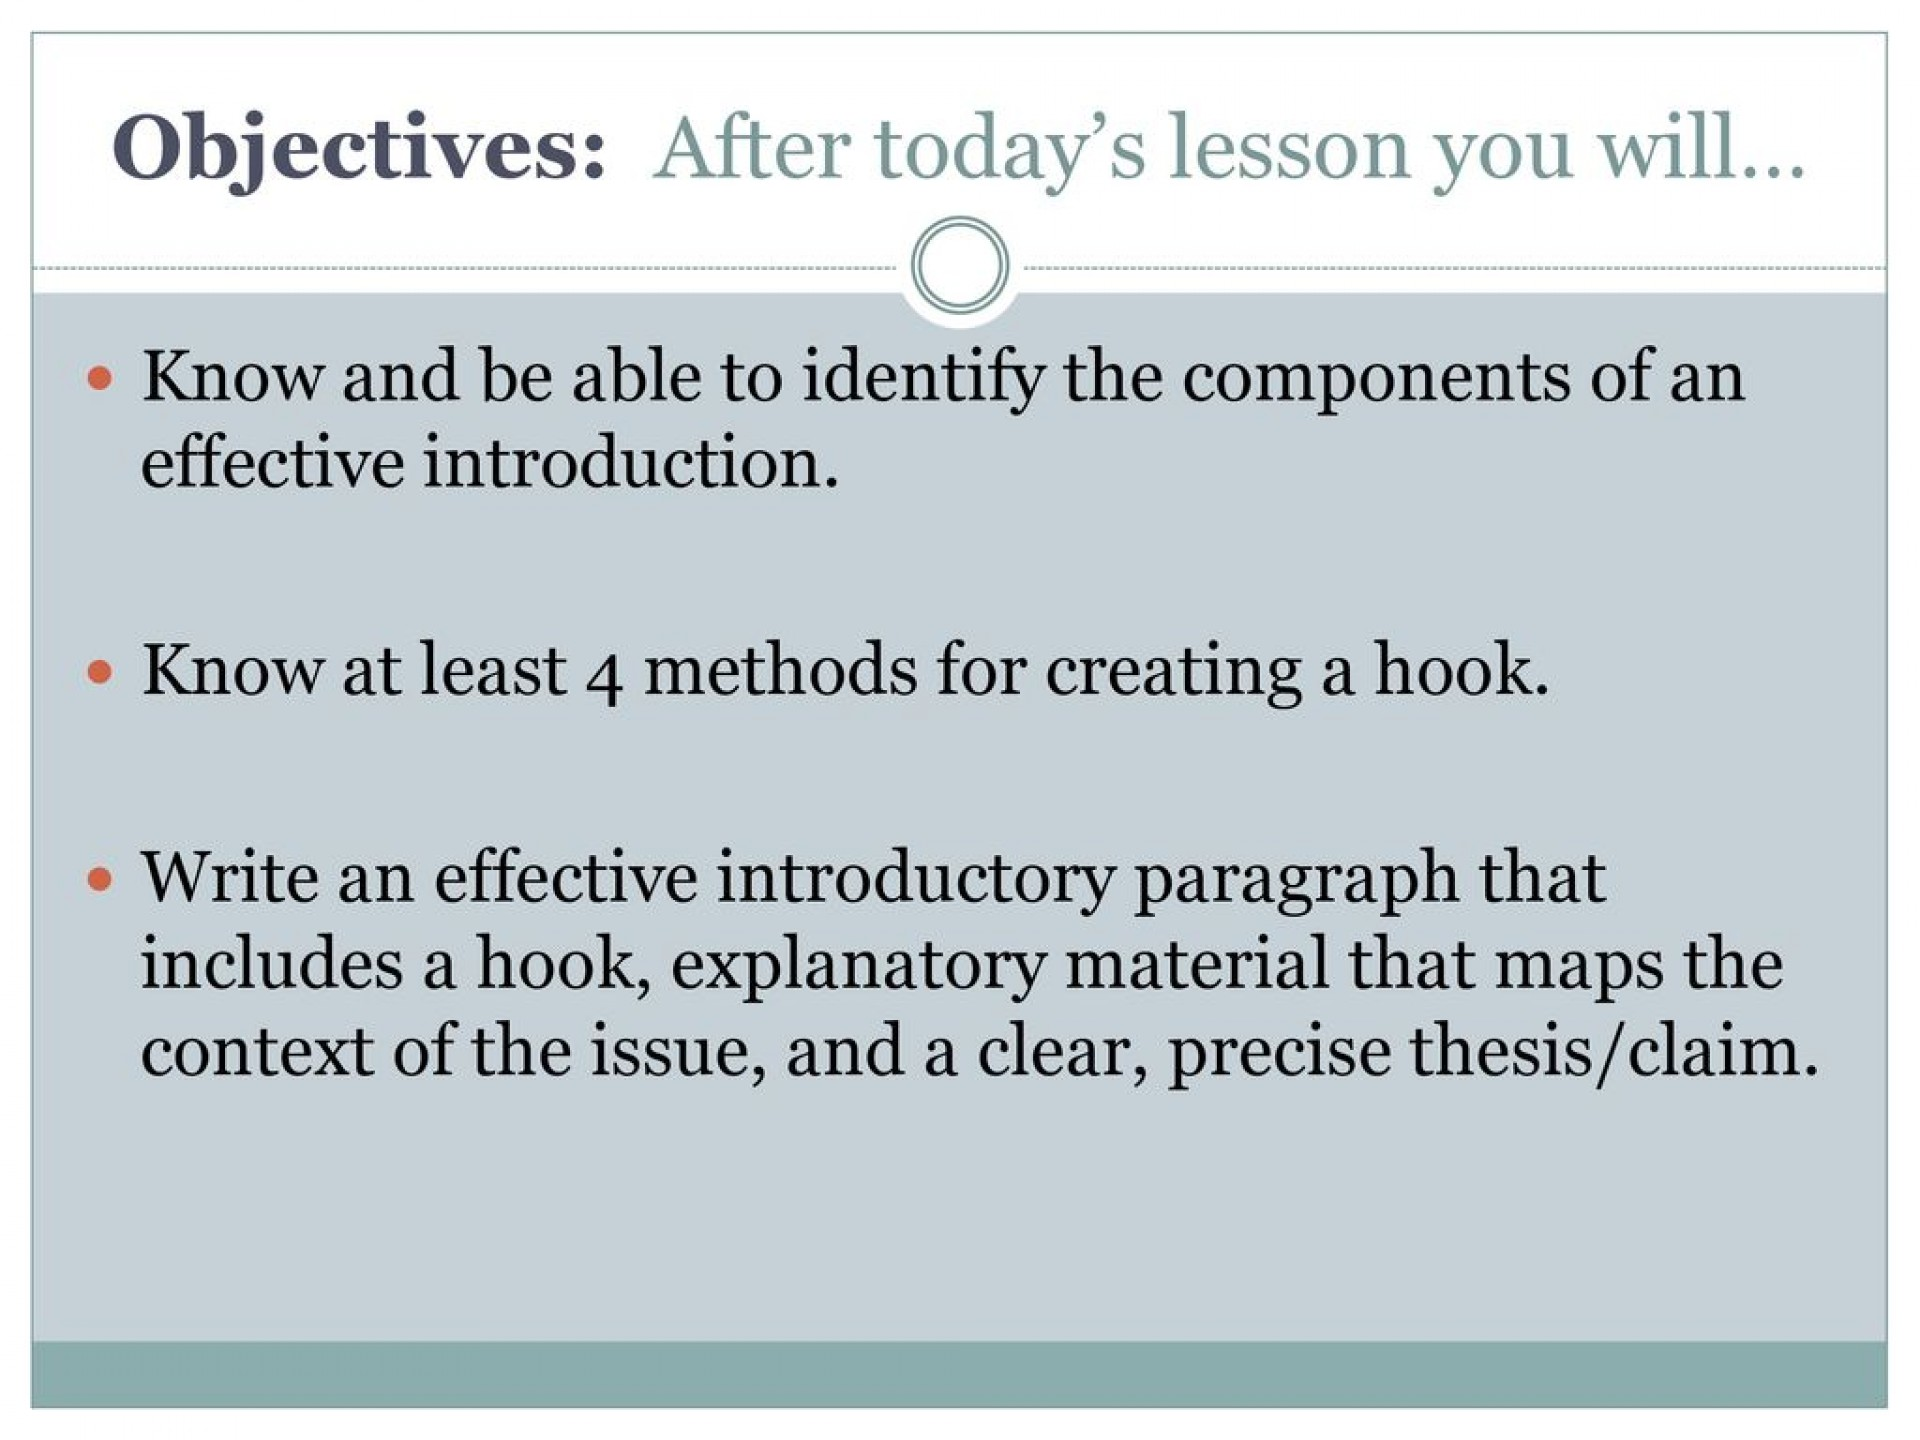 004 An Effective Claim For Argumentative Essay Is Example Wondrous Which Statement Of Brainly Quizlet 1920